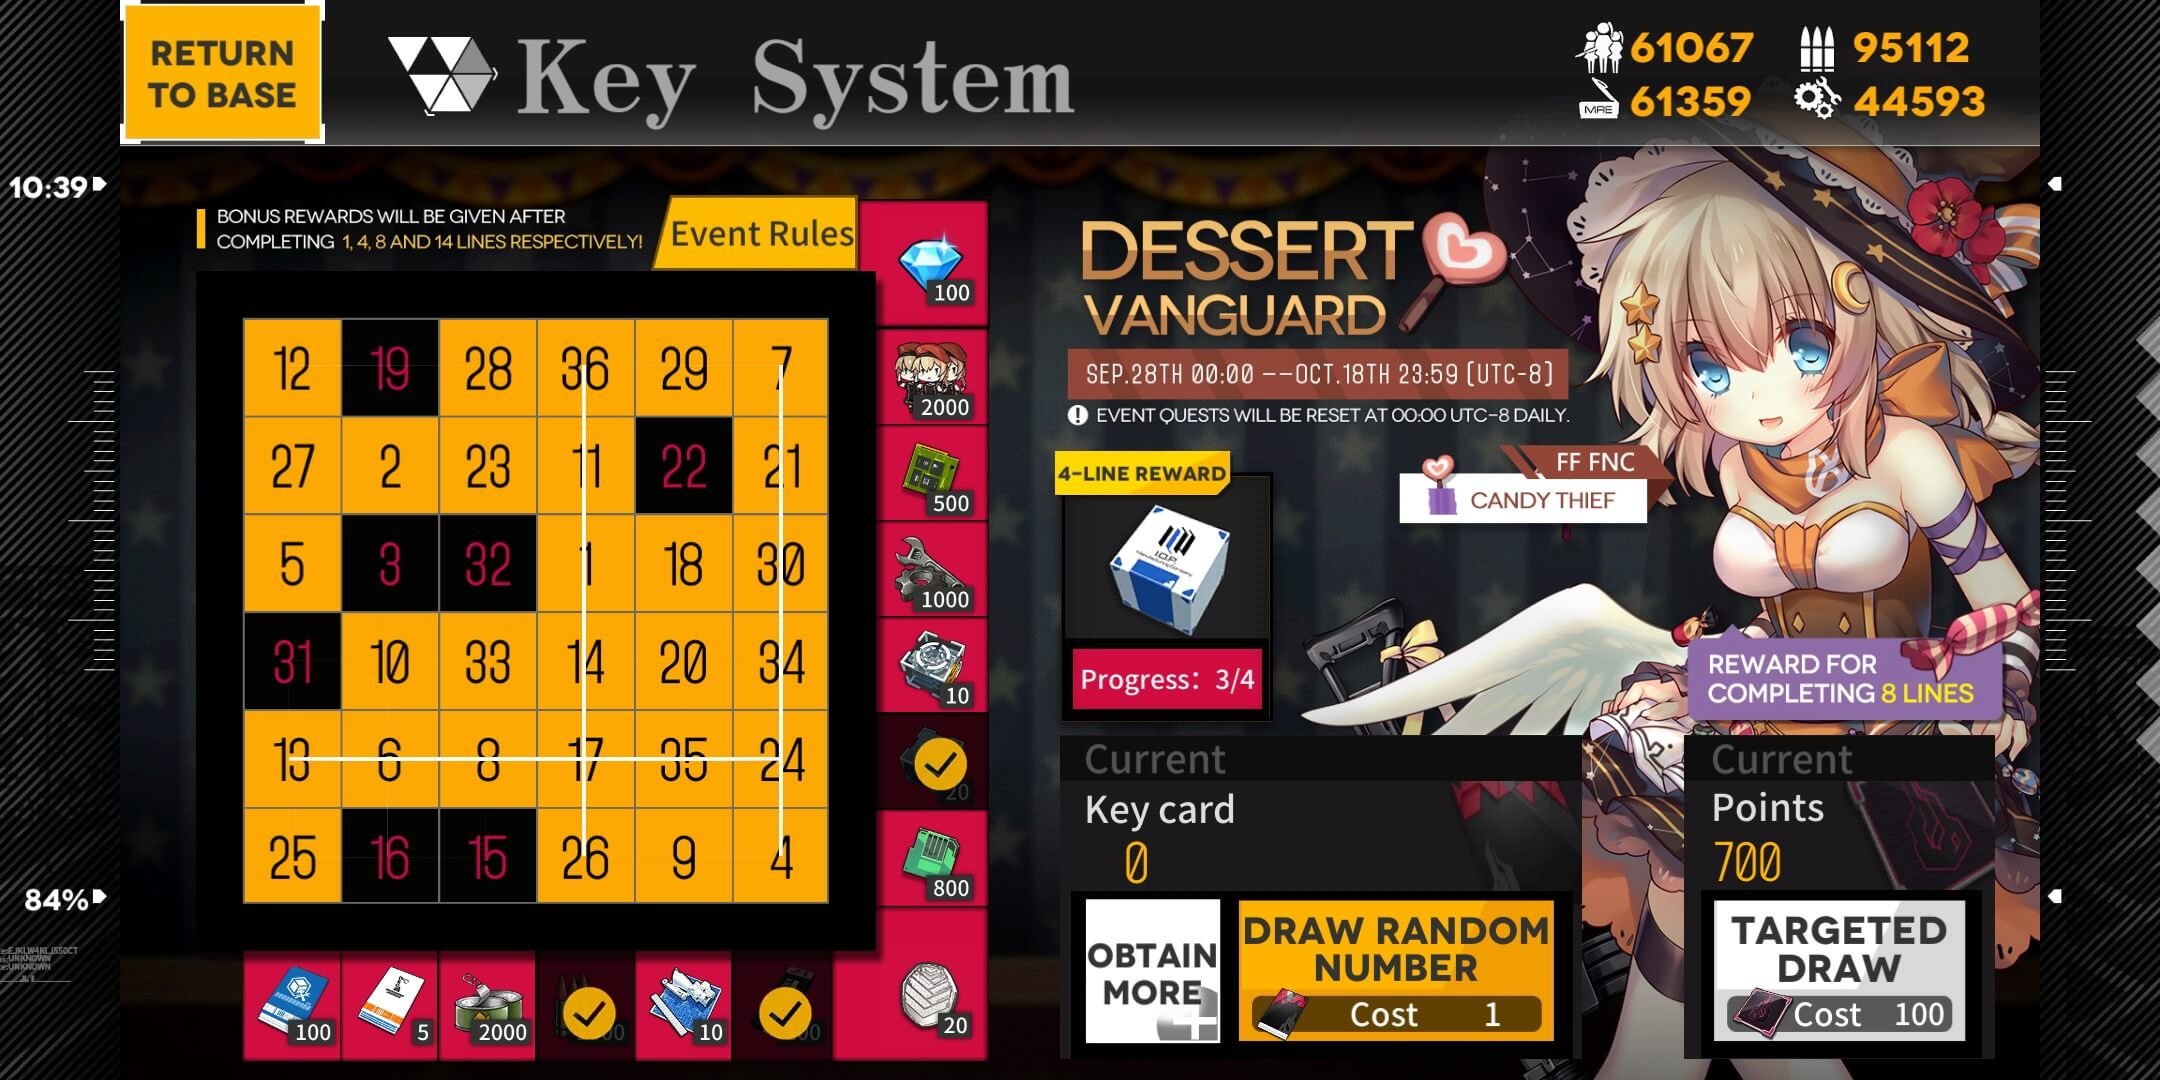 Girls' Frontline FNC Bingo (Key Card) Board with 7 open slots and 700 points, allowing for full completion by using the targeted draws.